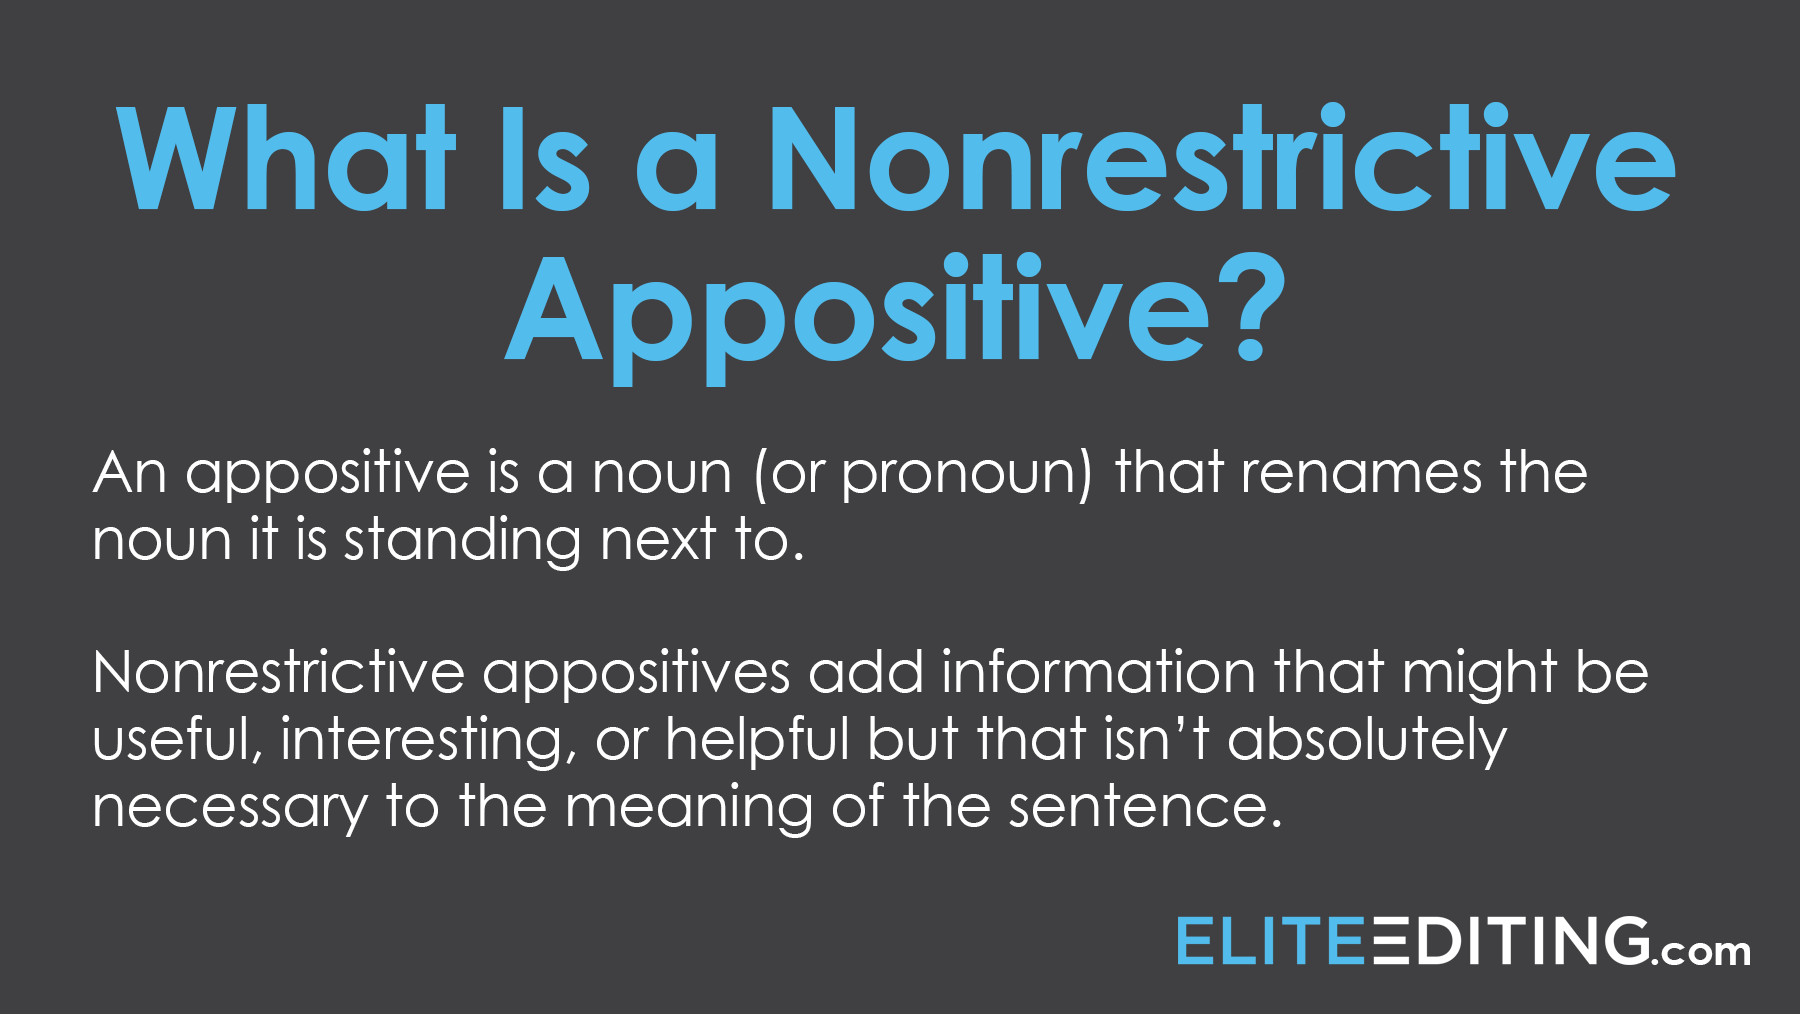 what is a nonrestrictive appositive